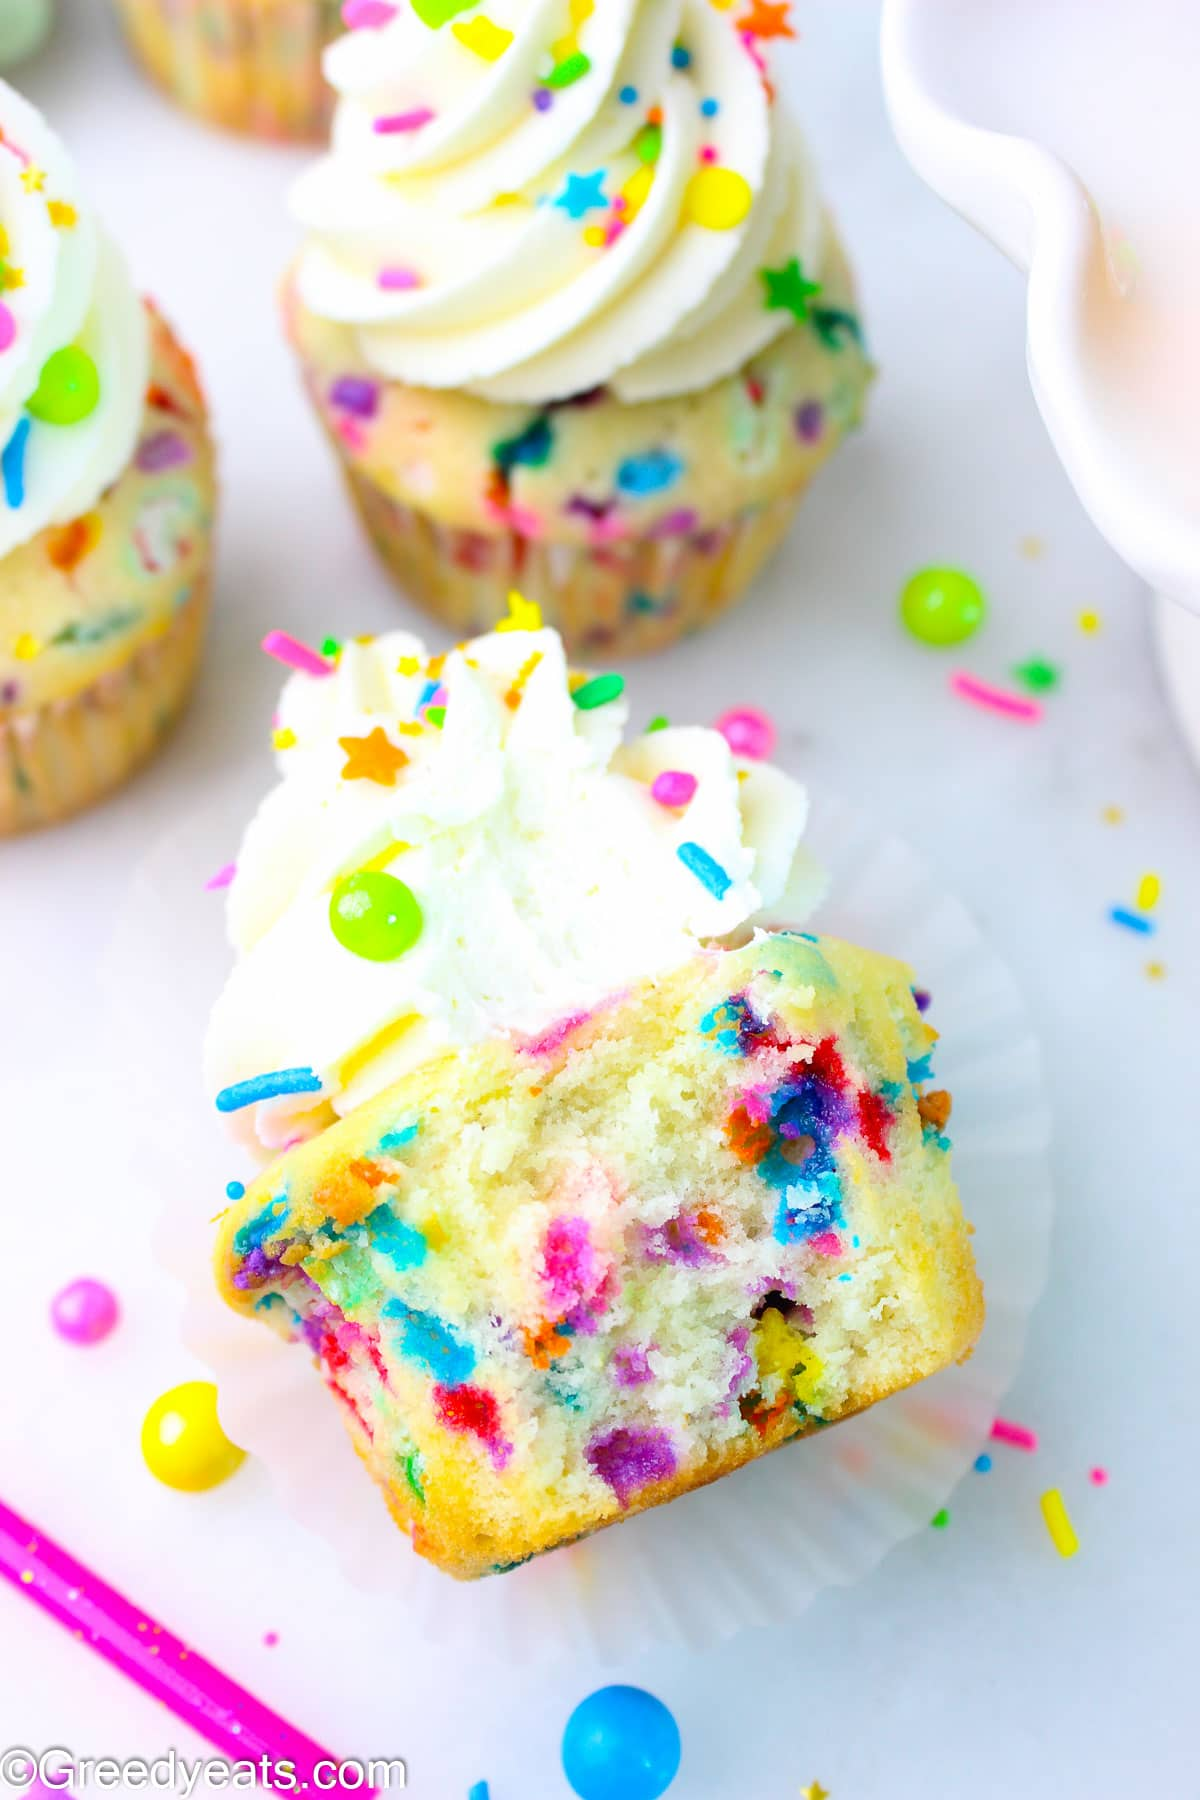 Soft, moist and fluffy Birthday Cupcake recipe with creamy Vanilla Frosting.